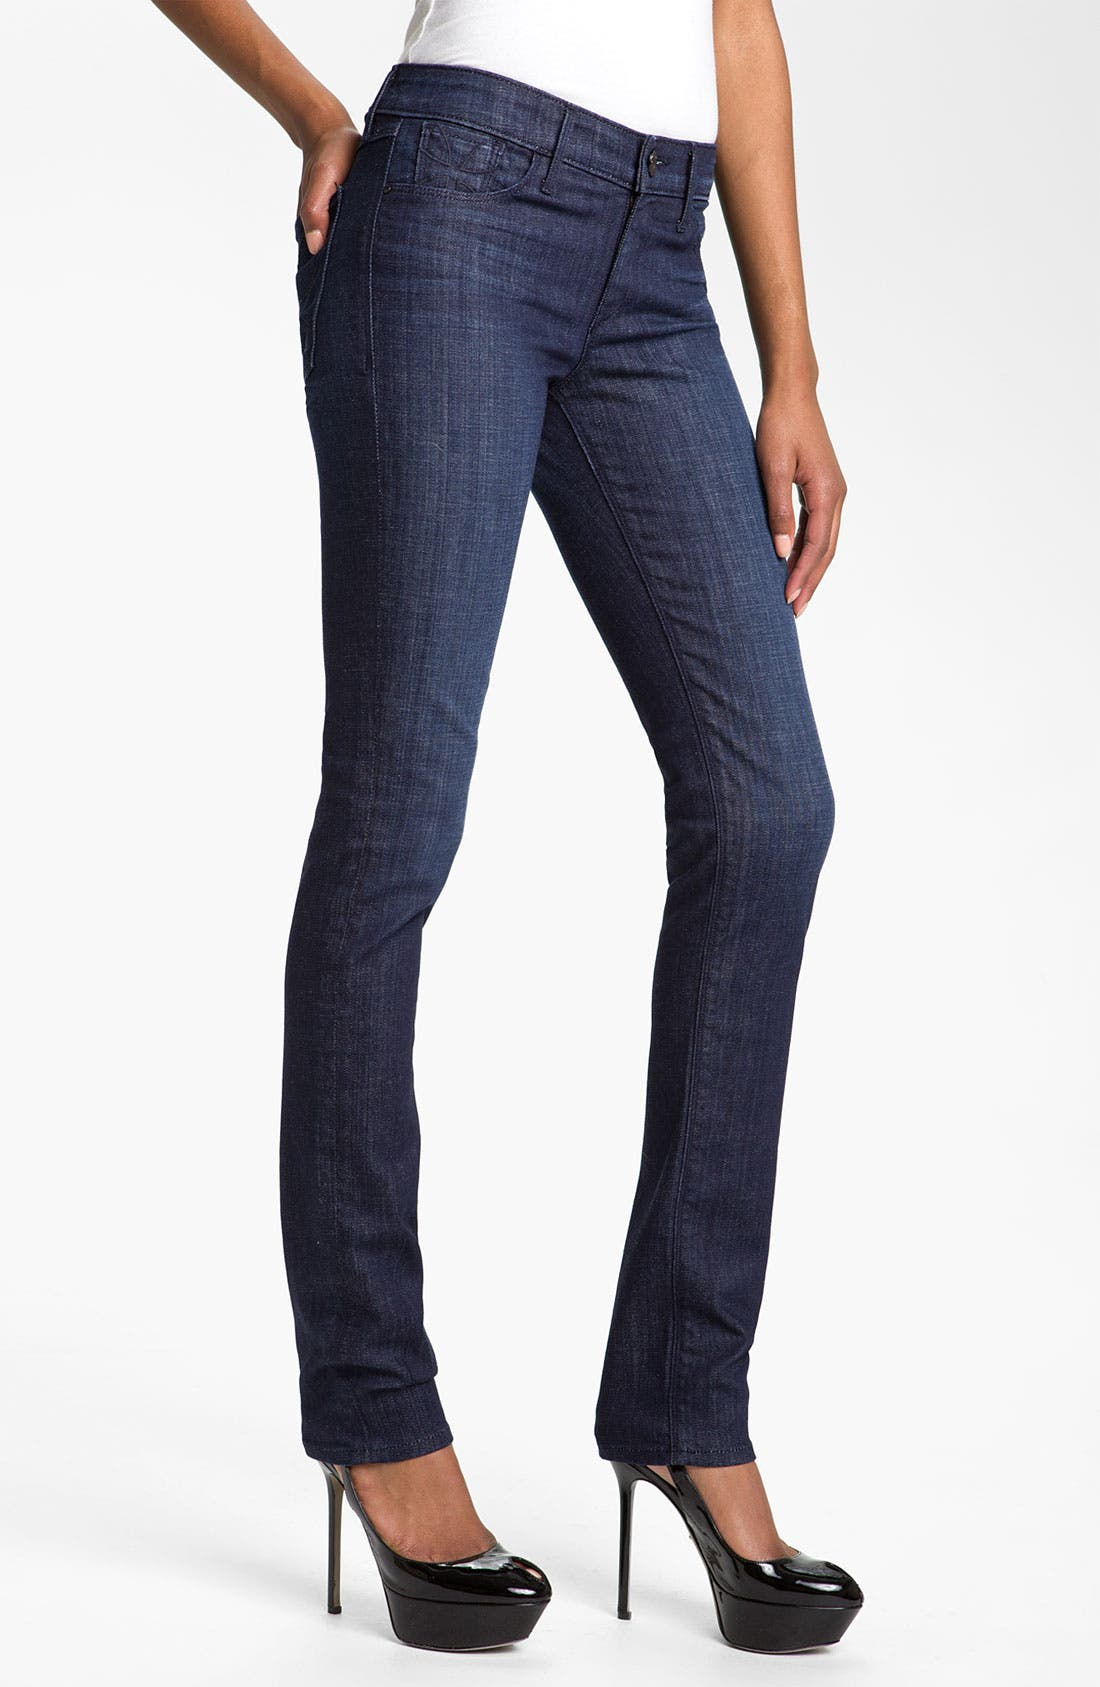 Alternate Image 1 Selected - Habitual 'Alice' Skinny Stretch Jeans (Nordstrom Exclusive)